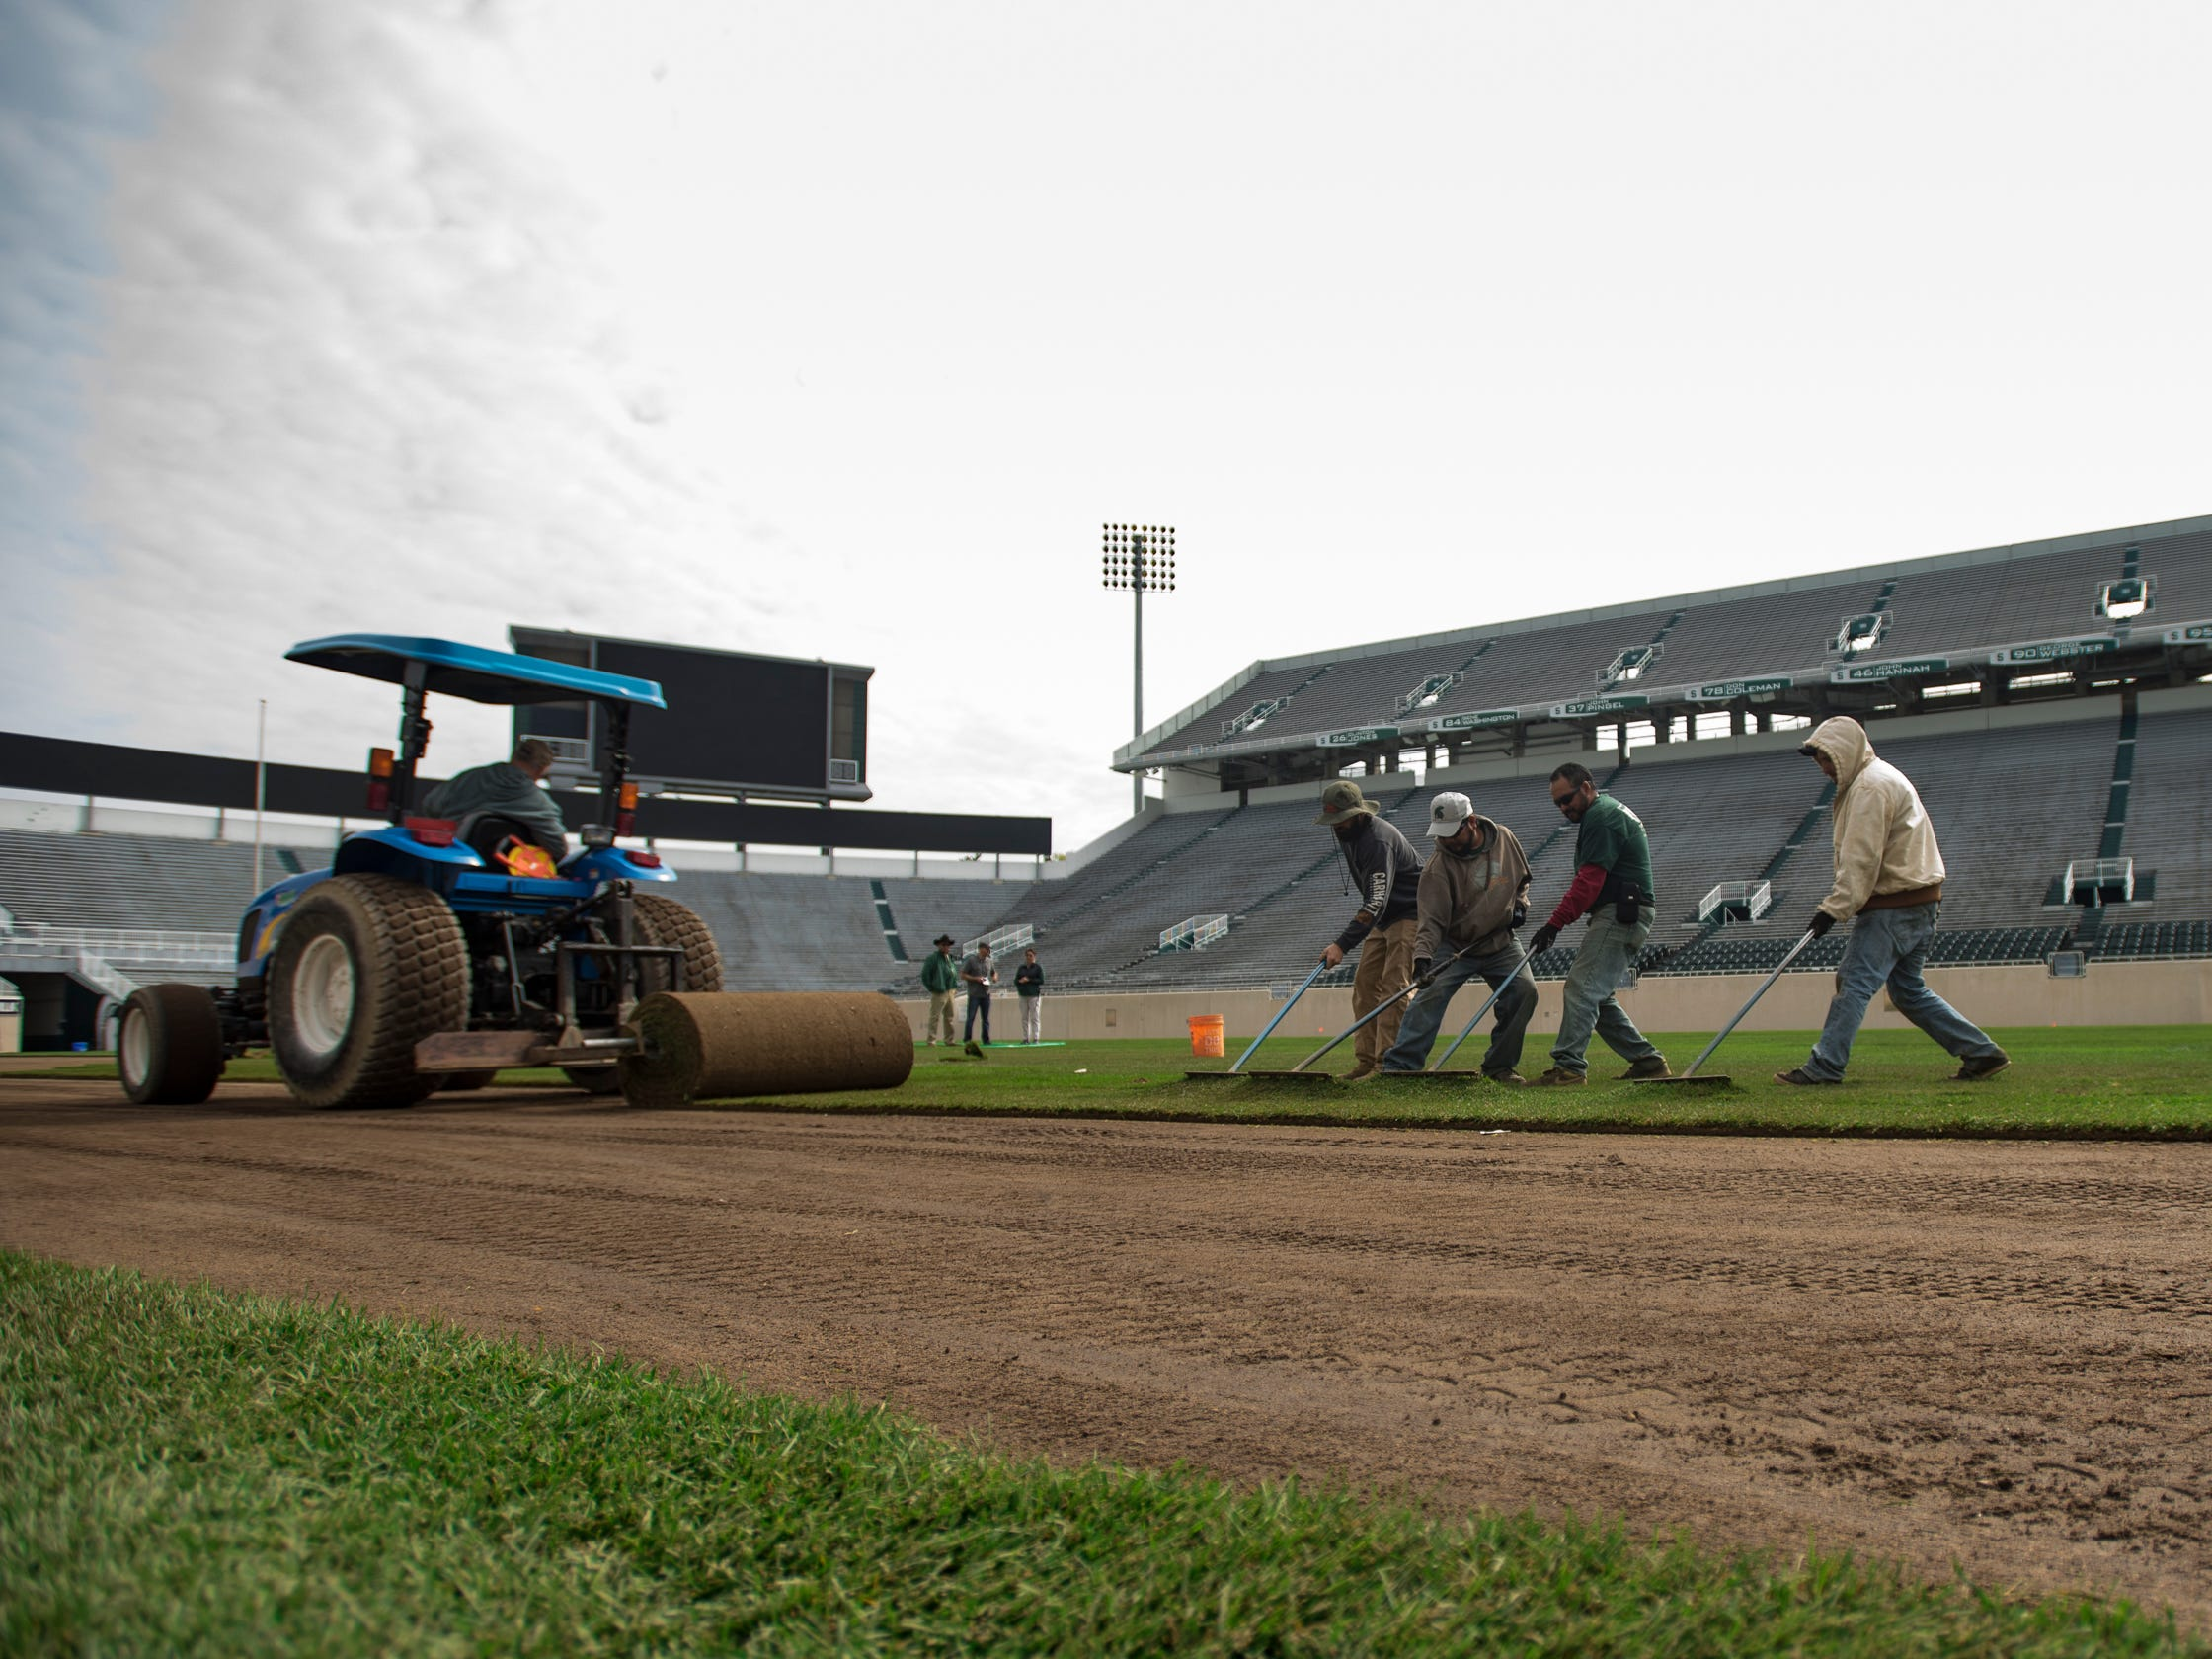 The Kentucky bluegrass that's been installed at MSU's Spartan Stadium is the same kind of grass used by the NFL's Super Bowl champion New England Patriots.